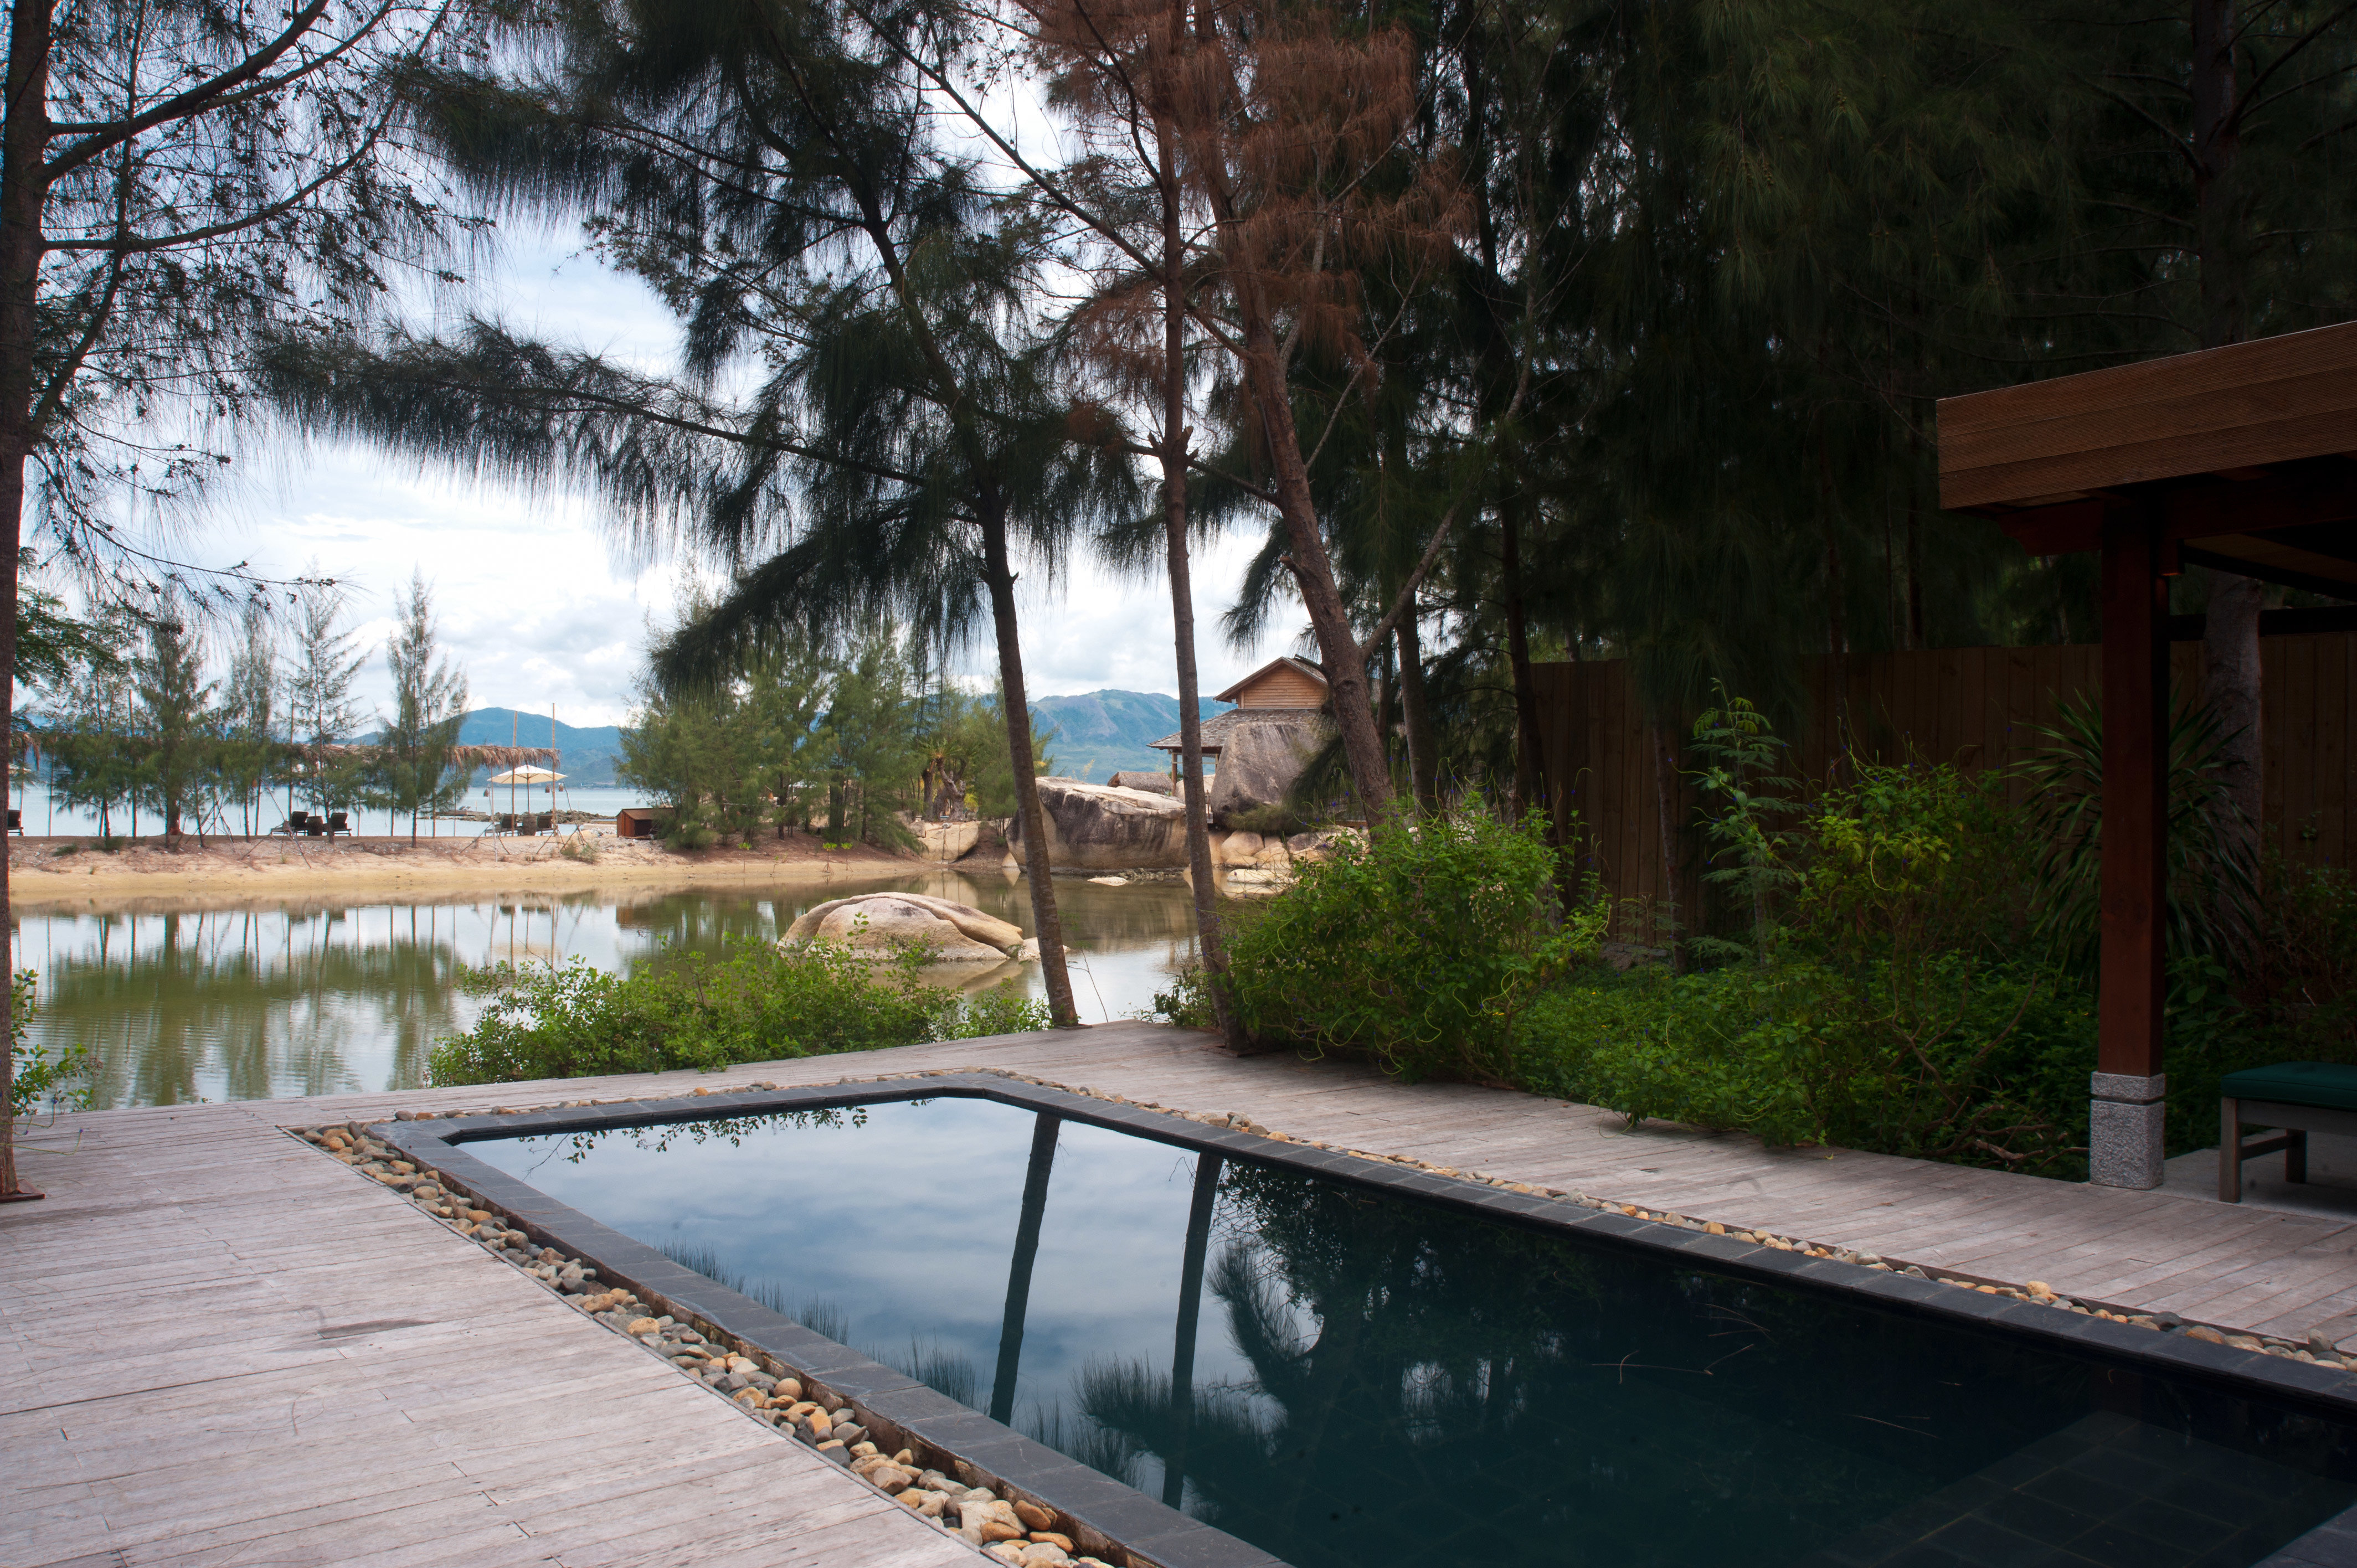 Country Deck Eco Forest Jungle Mountains Nature Outdoor Activities Patio Pool Scenic views Tropical Waterfront tree ground swimming pool property backyard house River home wooden Villa yard outdoor structure cottage walkway